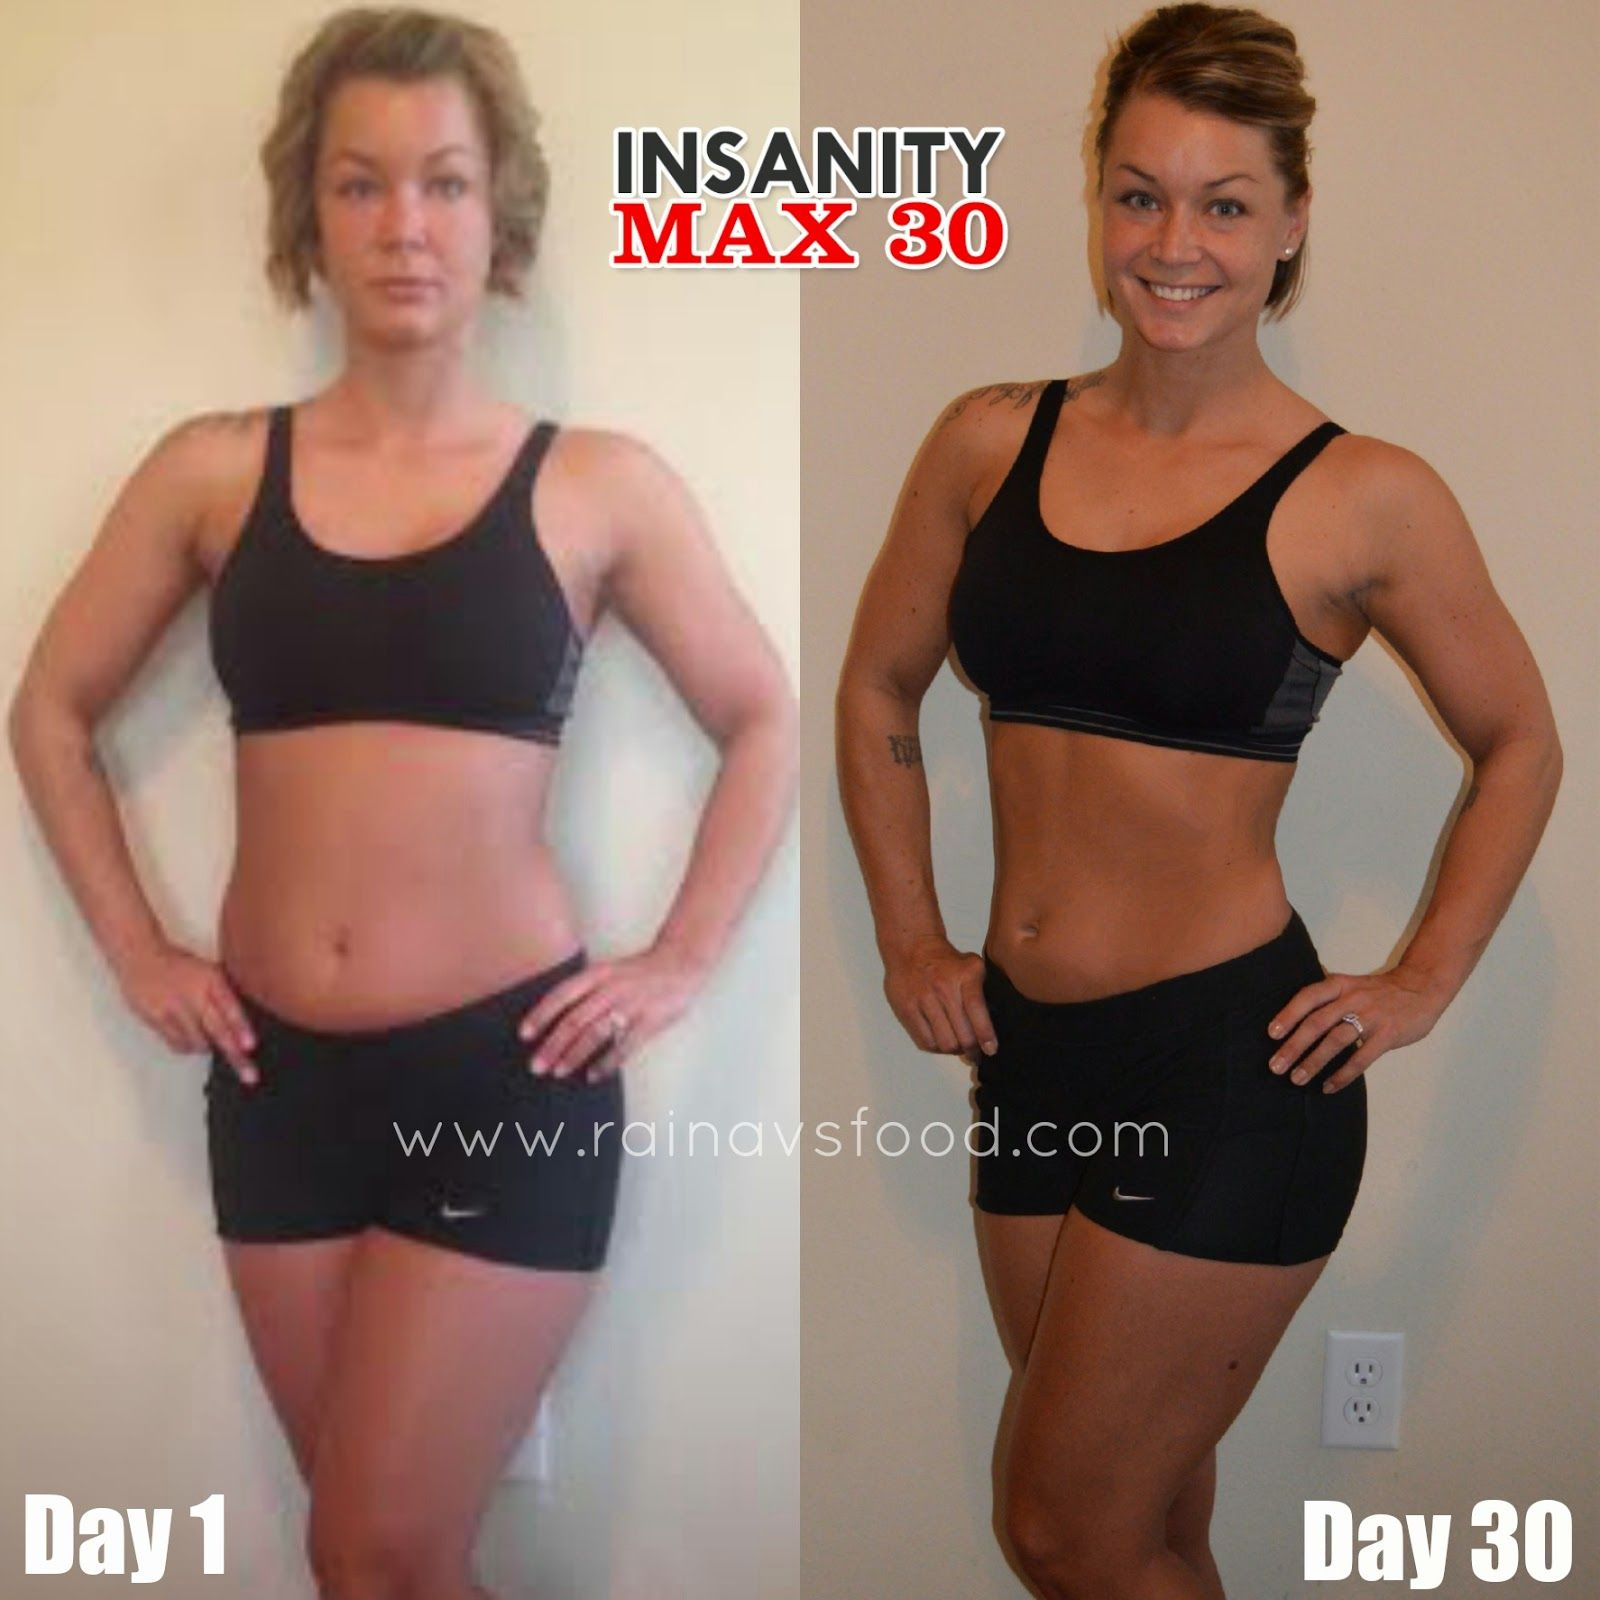 My Insanity Max:30 Results! You've GOT to try this program